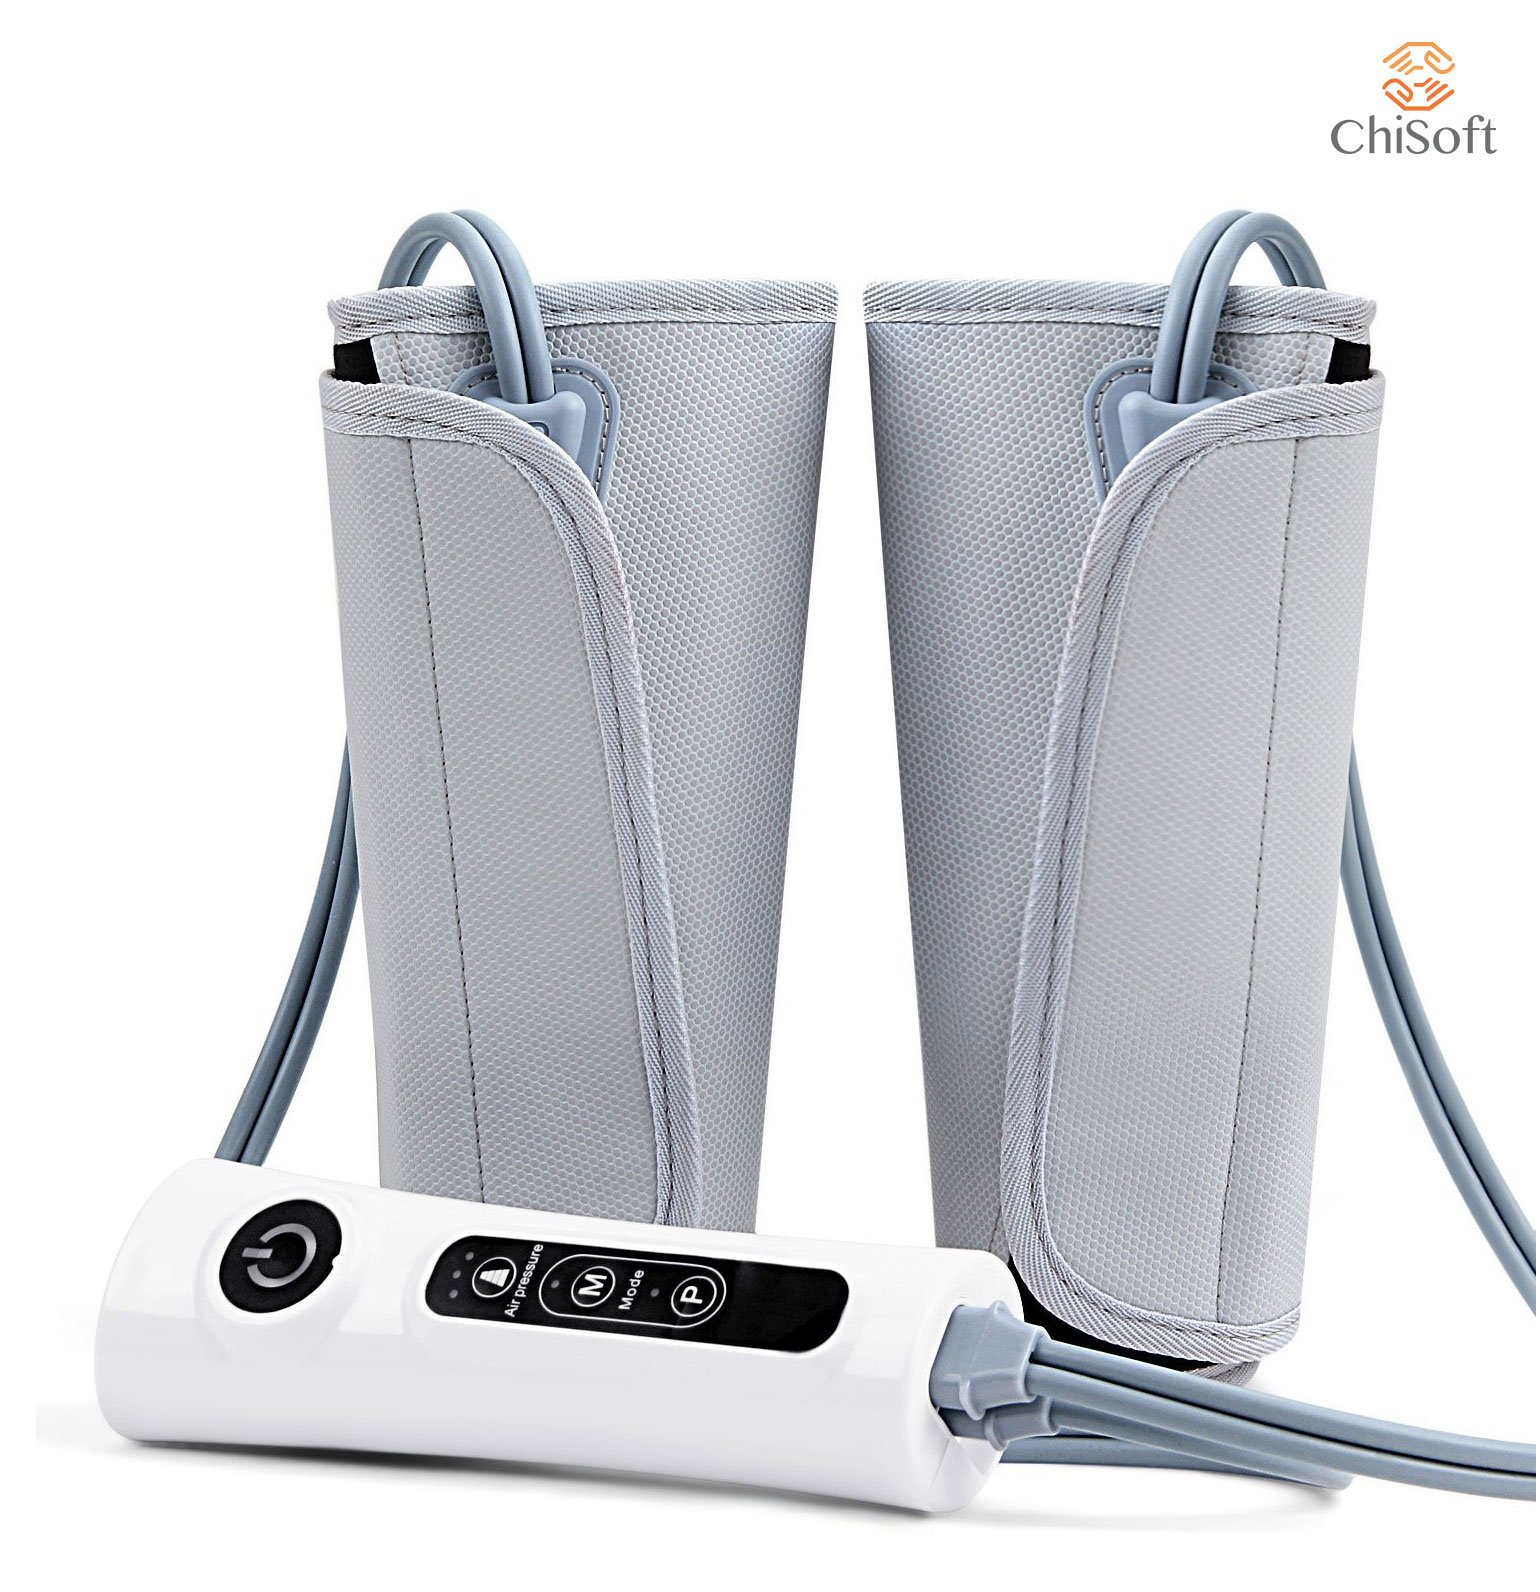 Air Compression Leg Wrap Massager CHISOFT Circulation Enhancing Boot Wraps Using Air Pressure Massage to Improve Circulation, Soothes Sore Muscles